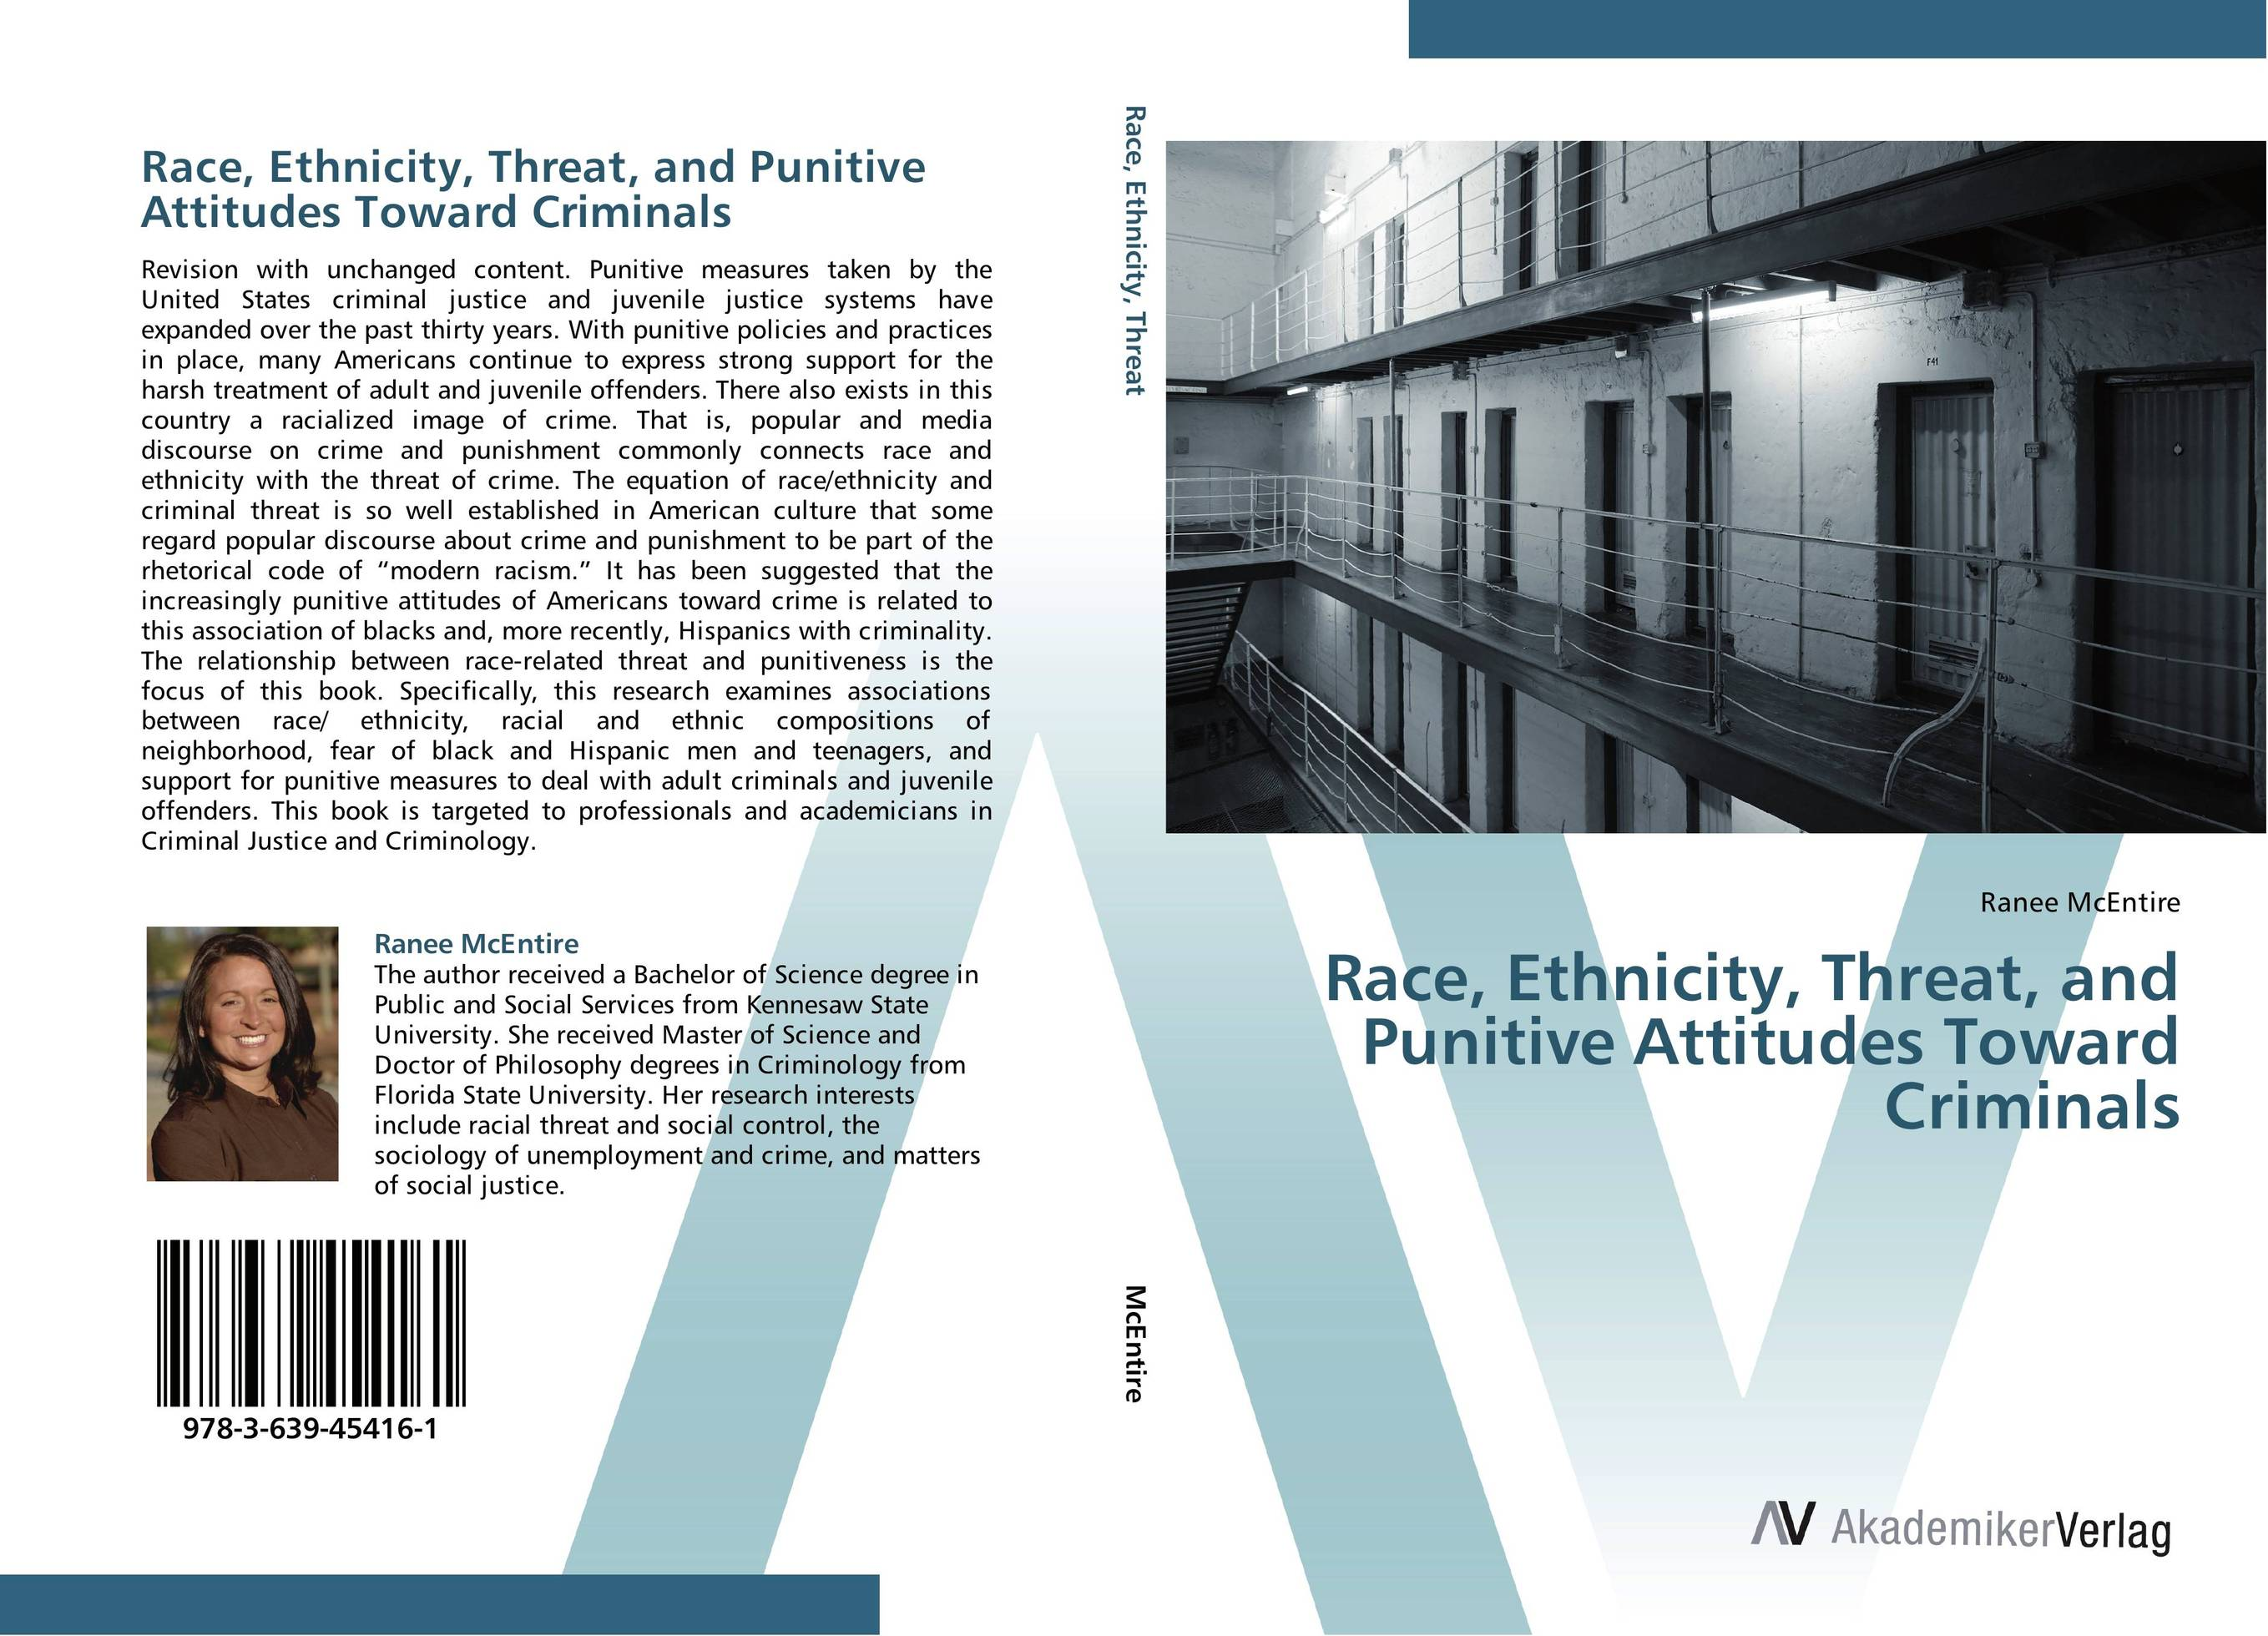 Race, Ethnicity, Threat, and Punitive Attitudes Toward Criminals heroin organized crime and the making of modern turkey